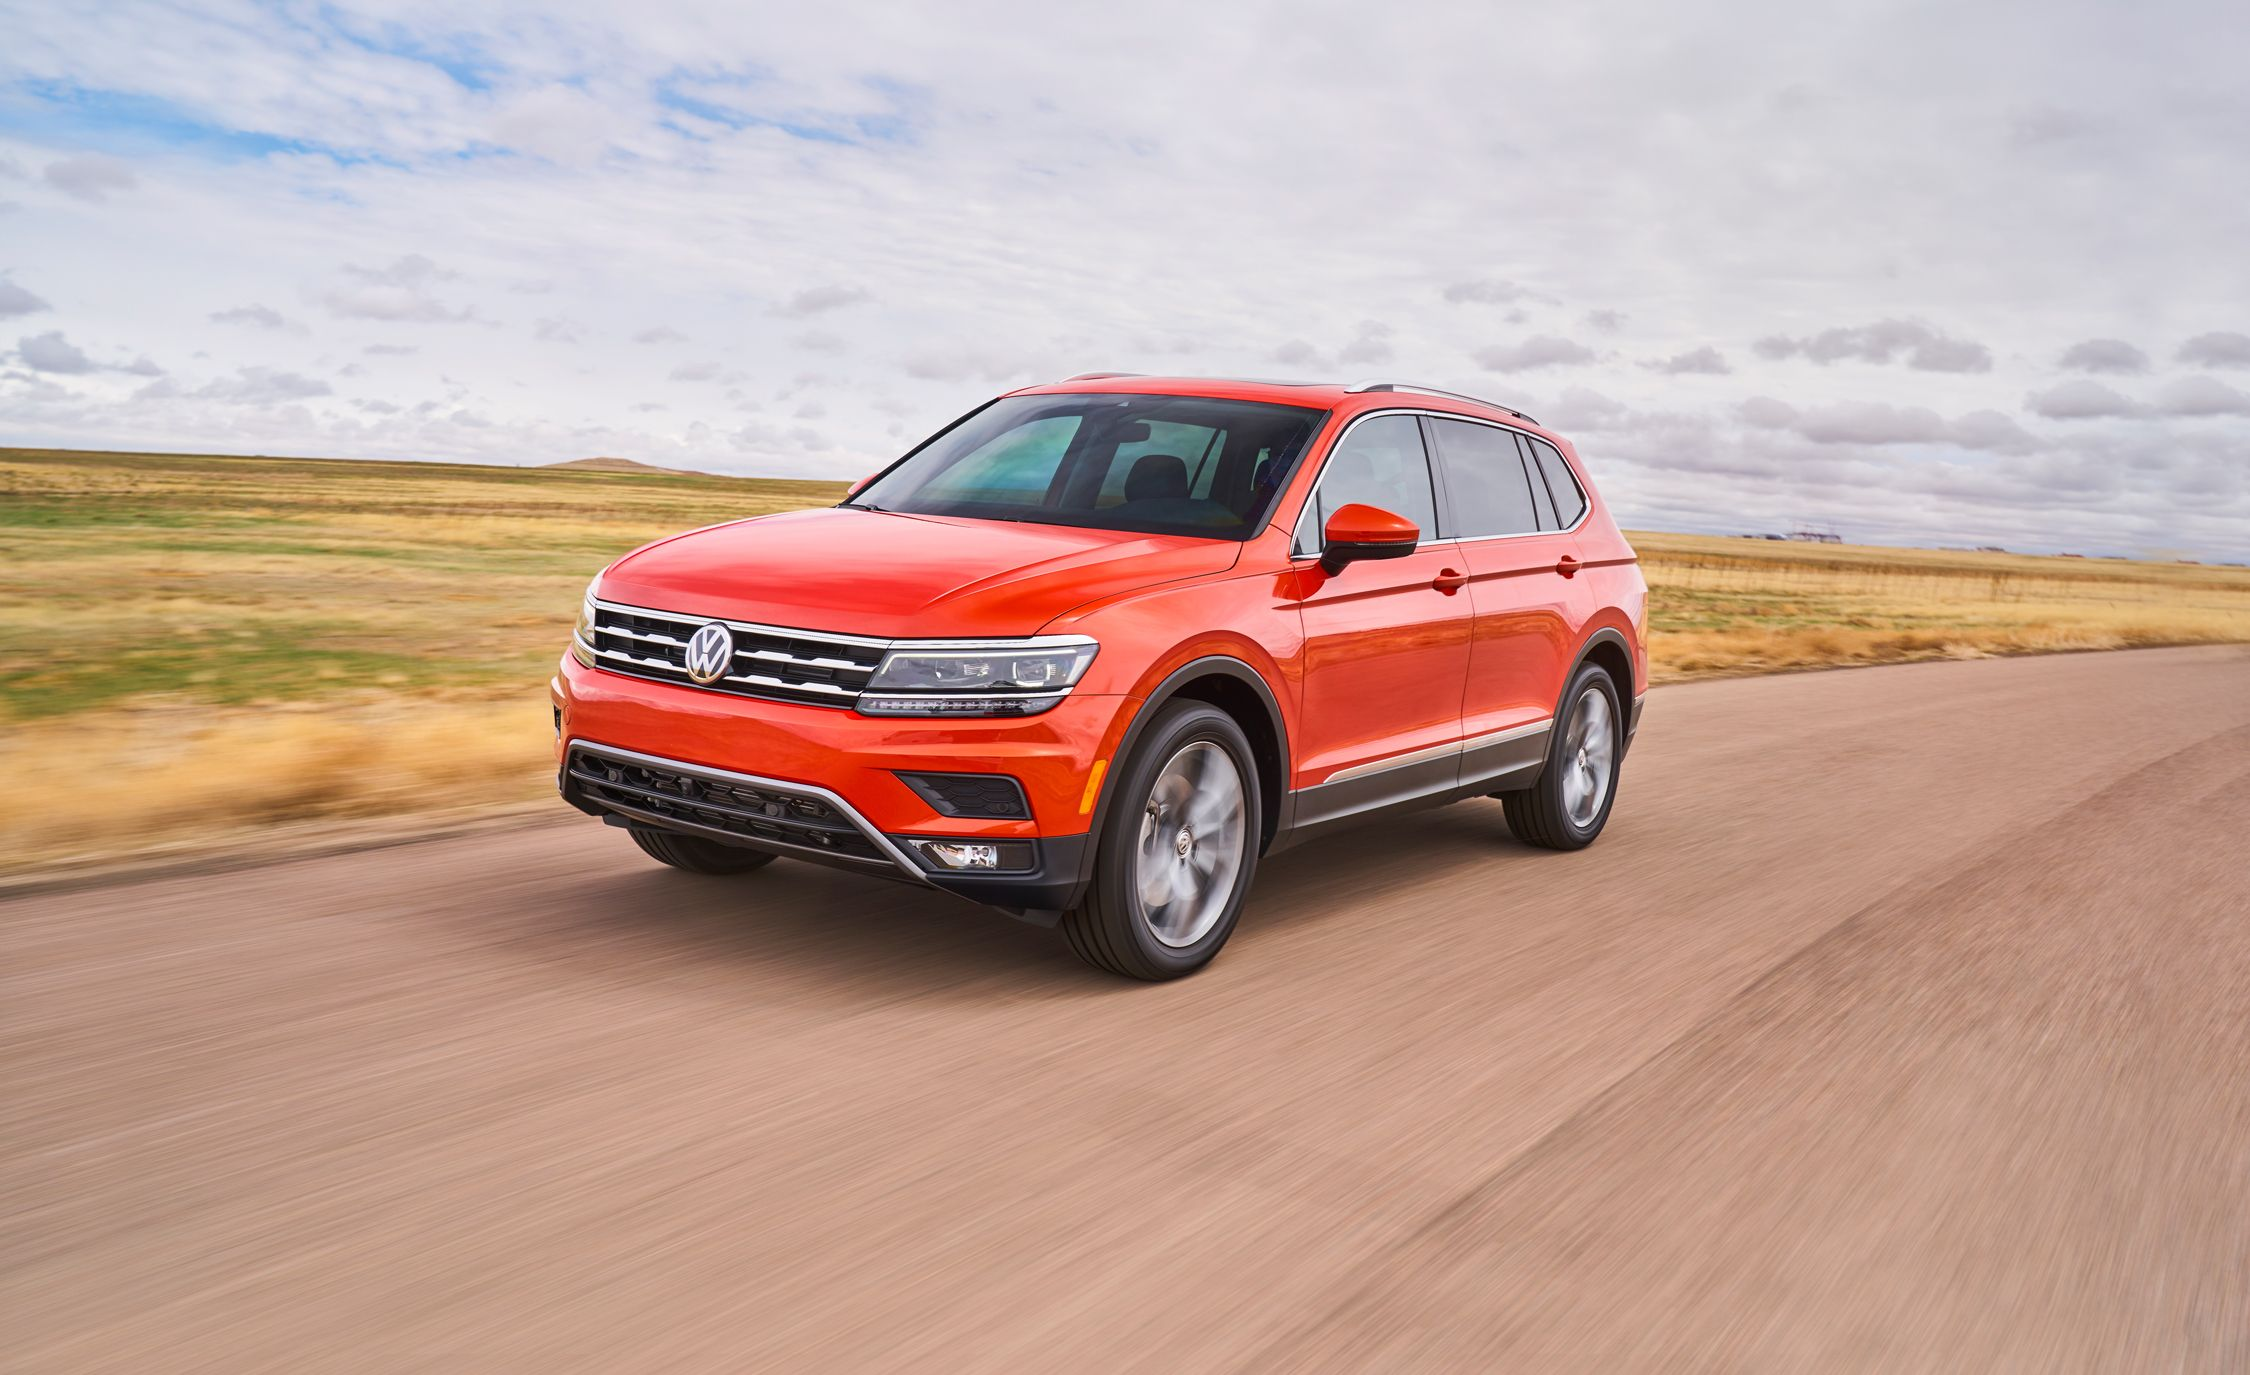 Vw Tiguan Fuse Box Recall Basic Wiring Schematic 2012 Diagram 2018 Volkswagen First Drive Review Car And Driver Passat Layout